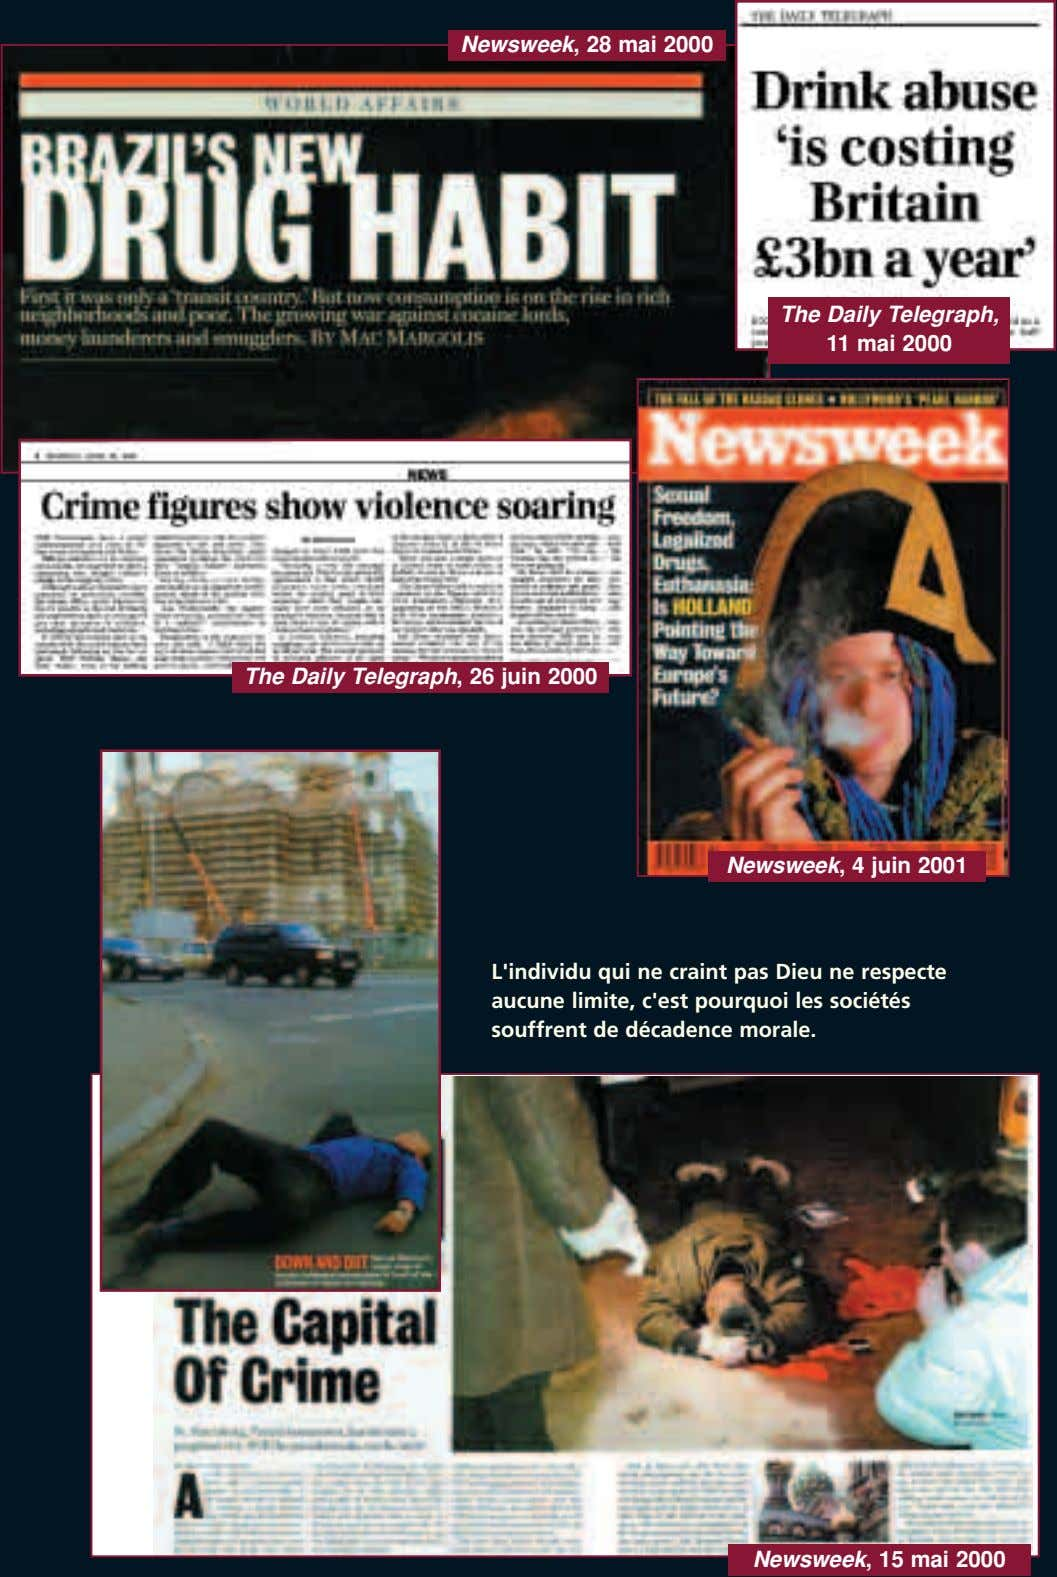 Newsweek, 28 mai 2000 The Daily Telegraph, 11 mai 2000 The Daily Telegraph, 26 juin